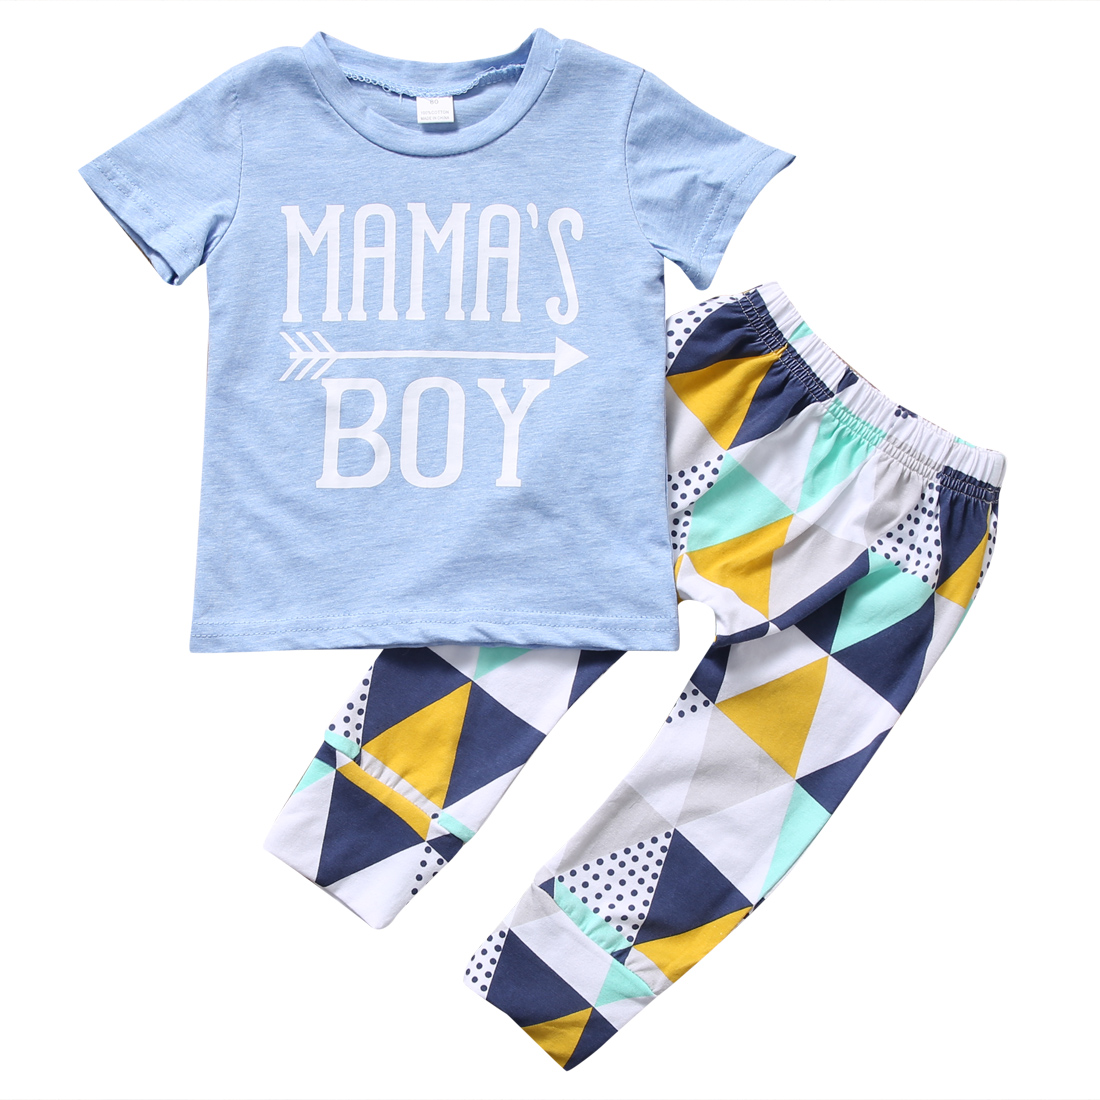 2PCS Newborn Baby Boys Outfits T-shirt Tops+ Pants Sets Clothes Summer Short Sleeve Mama Boy Print Tees Casual Clothes newborn baby kids boys tops cool letter printing i do what i want sleeveless t shirt vest short pants 2pcs outfits set clothes